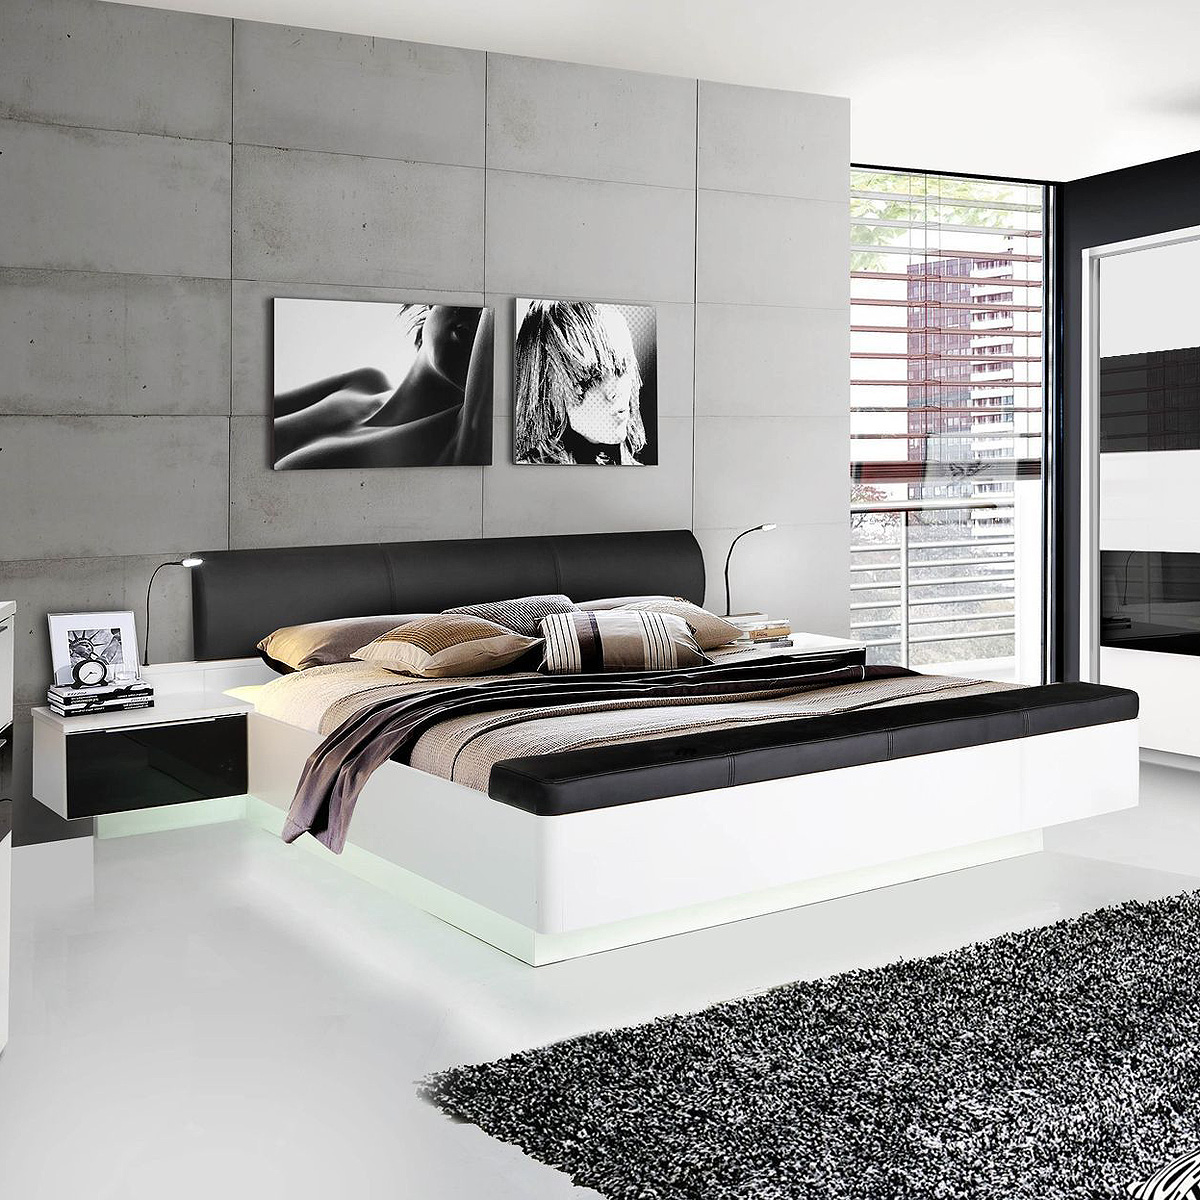 bettanlage freemont bett nachtkommode in wei schwarzglas gepolstert 180x200 eur 468 95. Black Bedroom Furniture Sets. Home Design Ideas